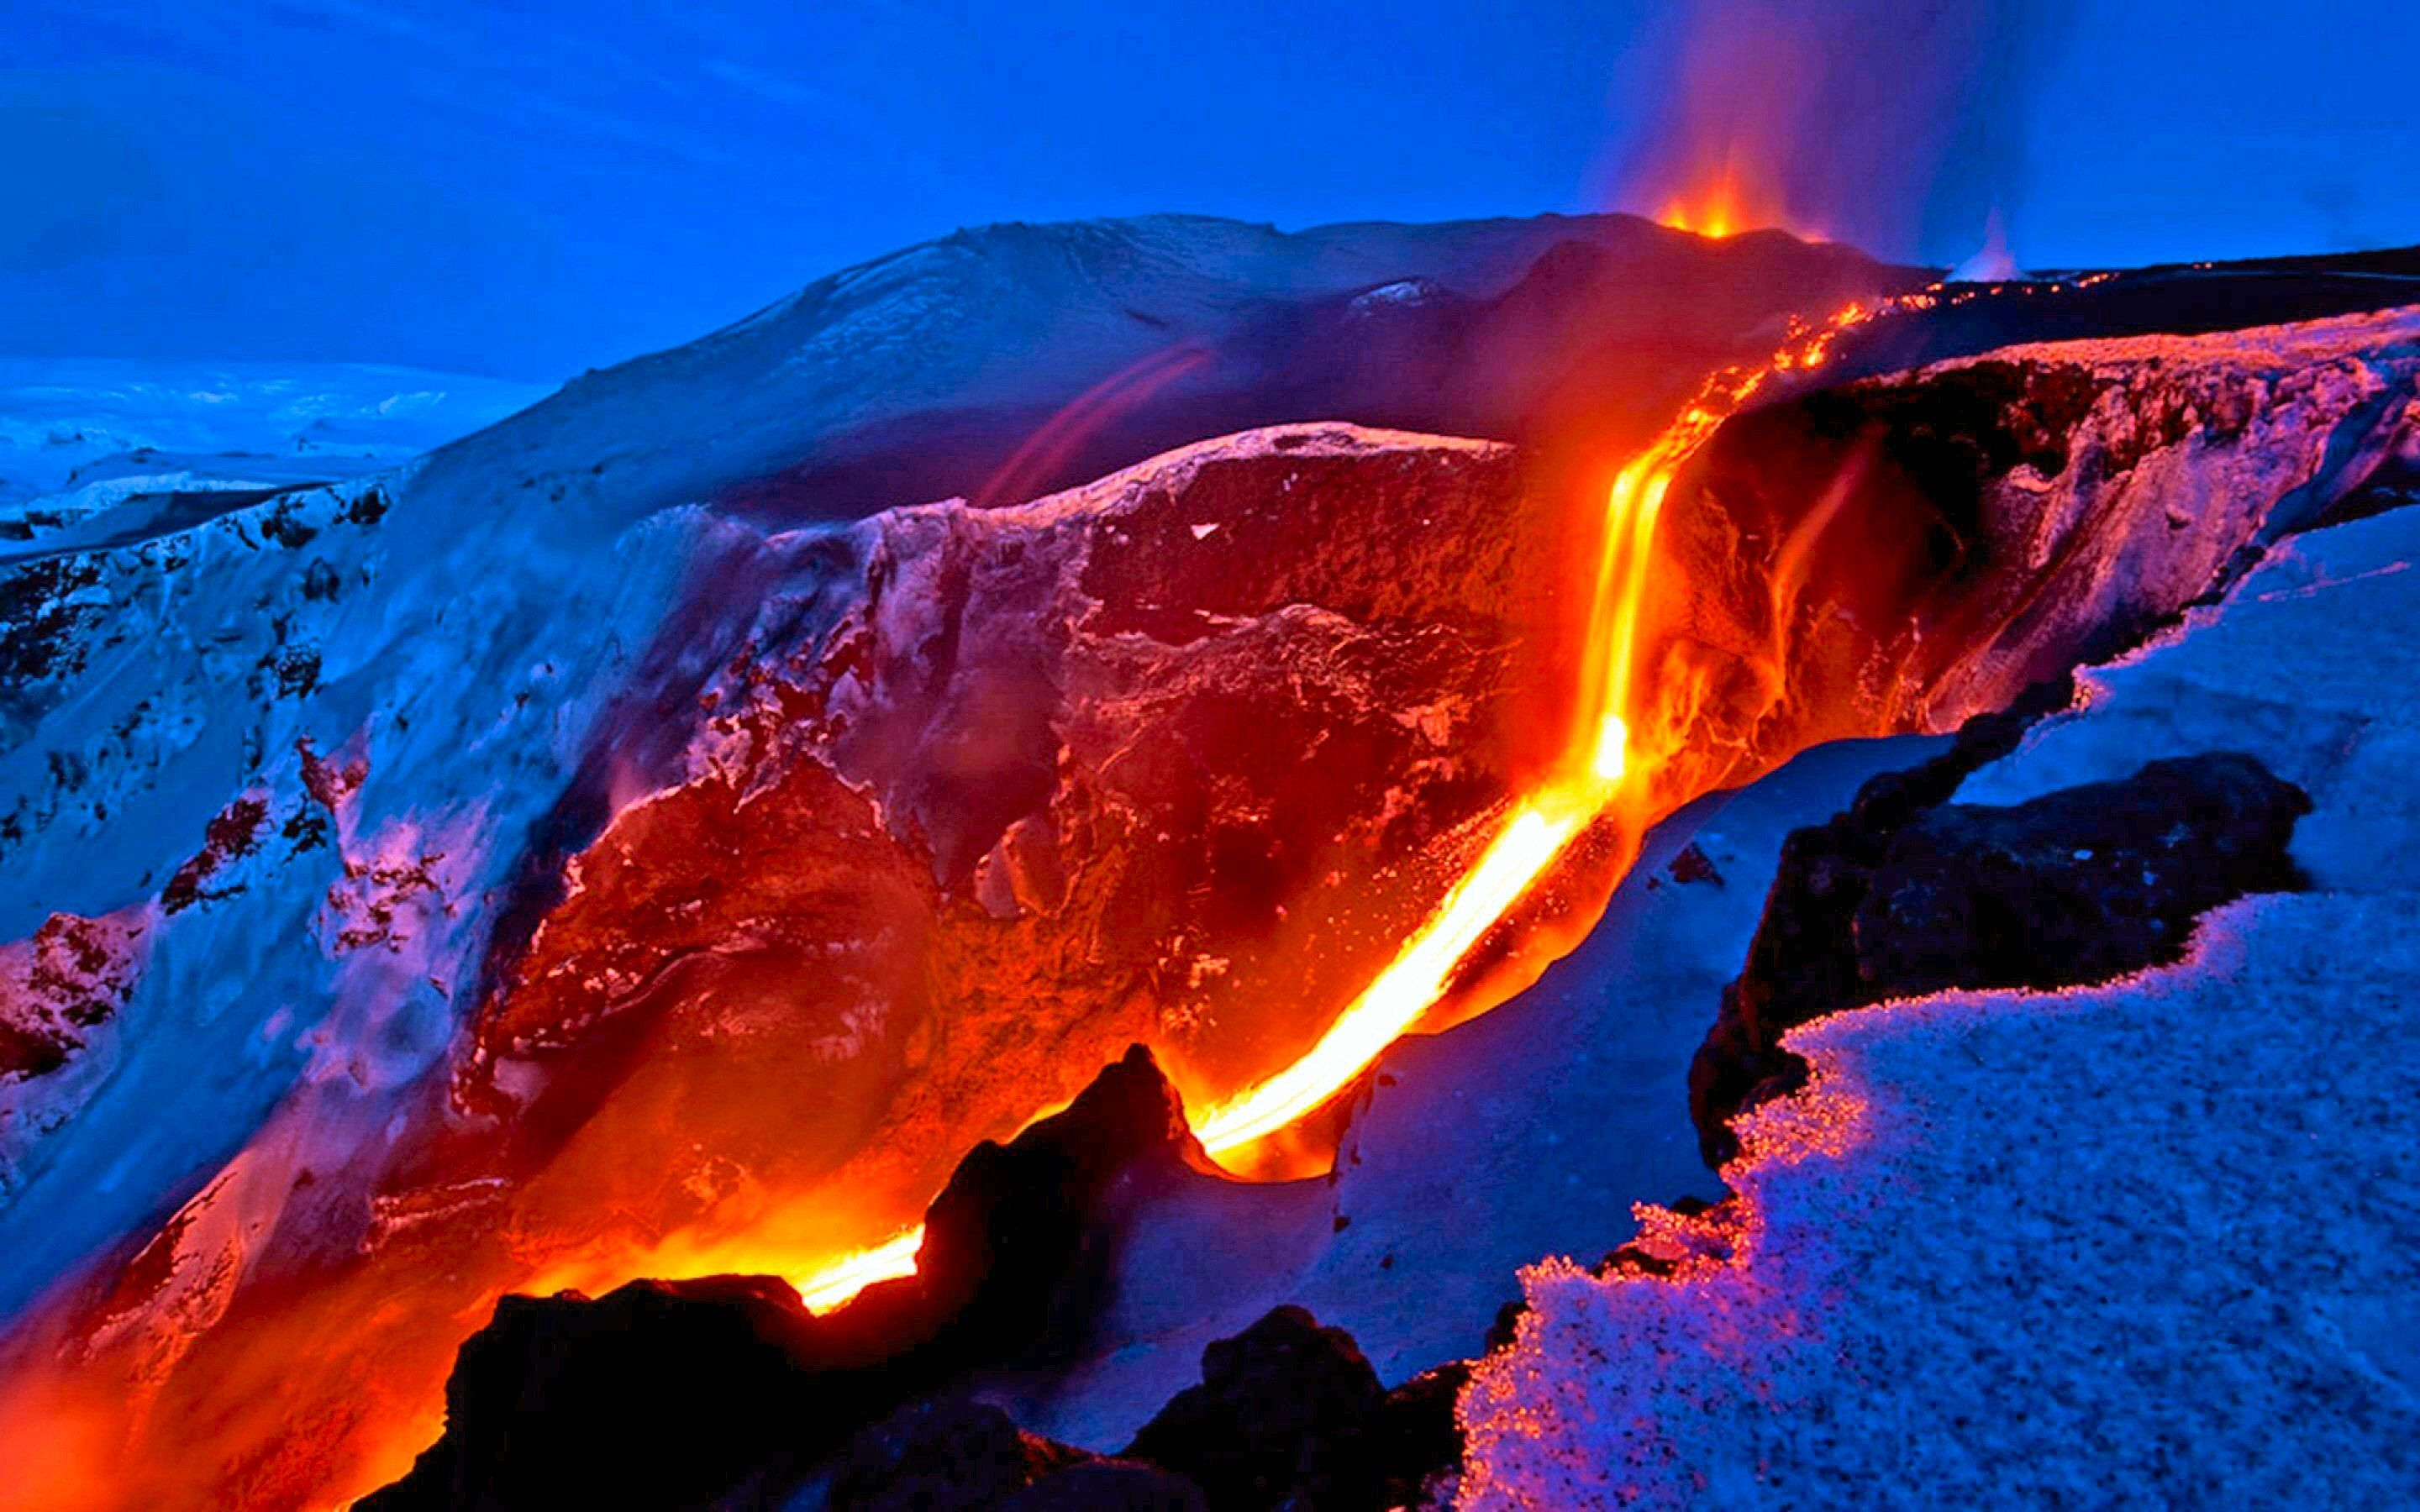 156 Volcano Hd Wallpapers Backgrounds Wallpaper Abyss Volcano Pictures Volcano Wallpaper Iceland Wallpaper